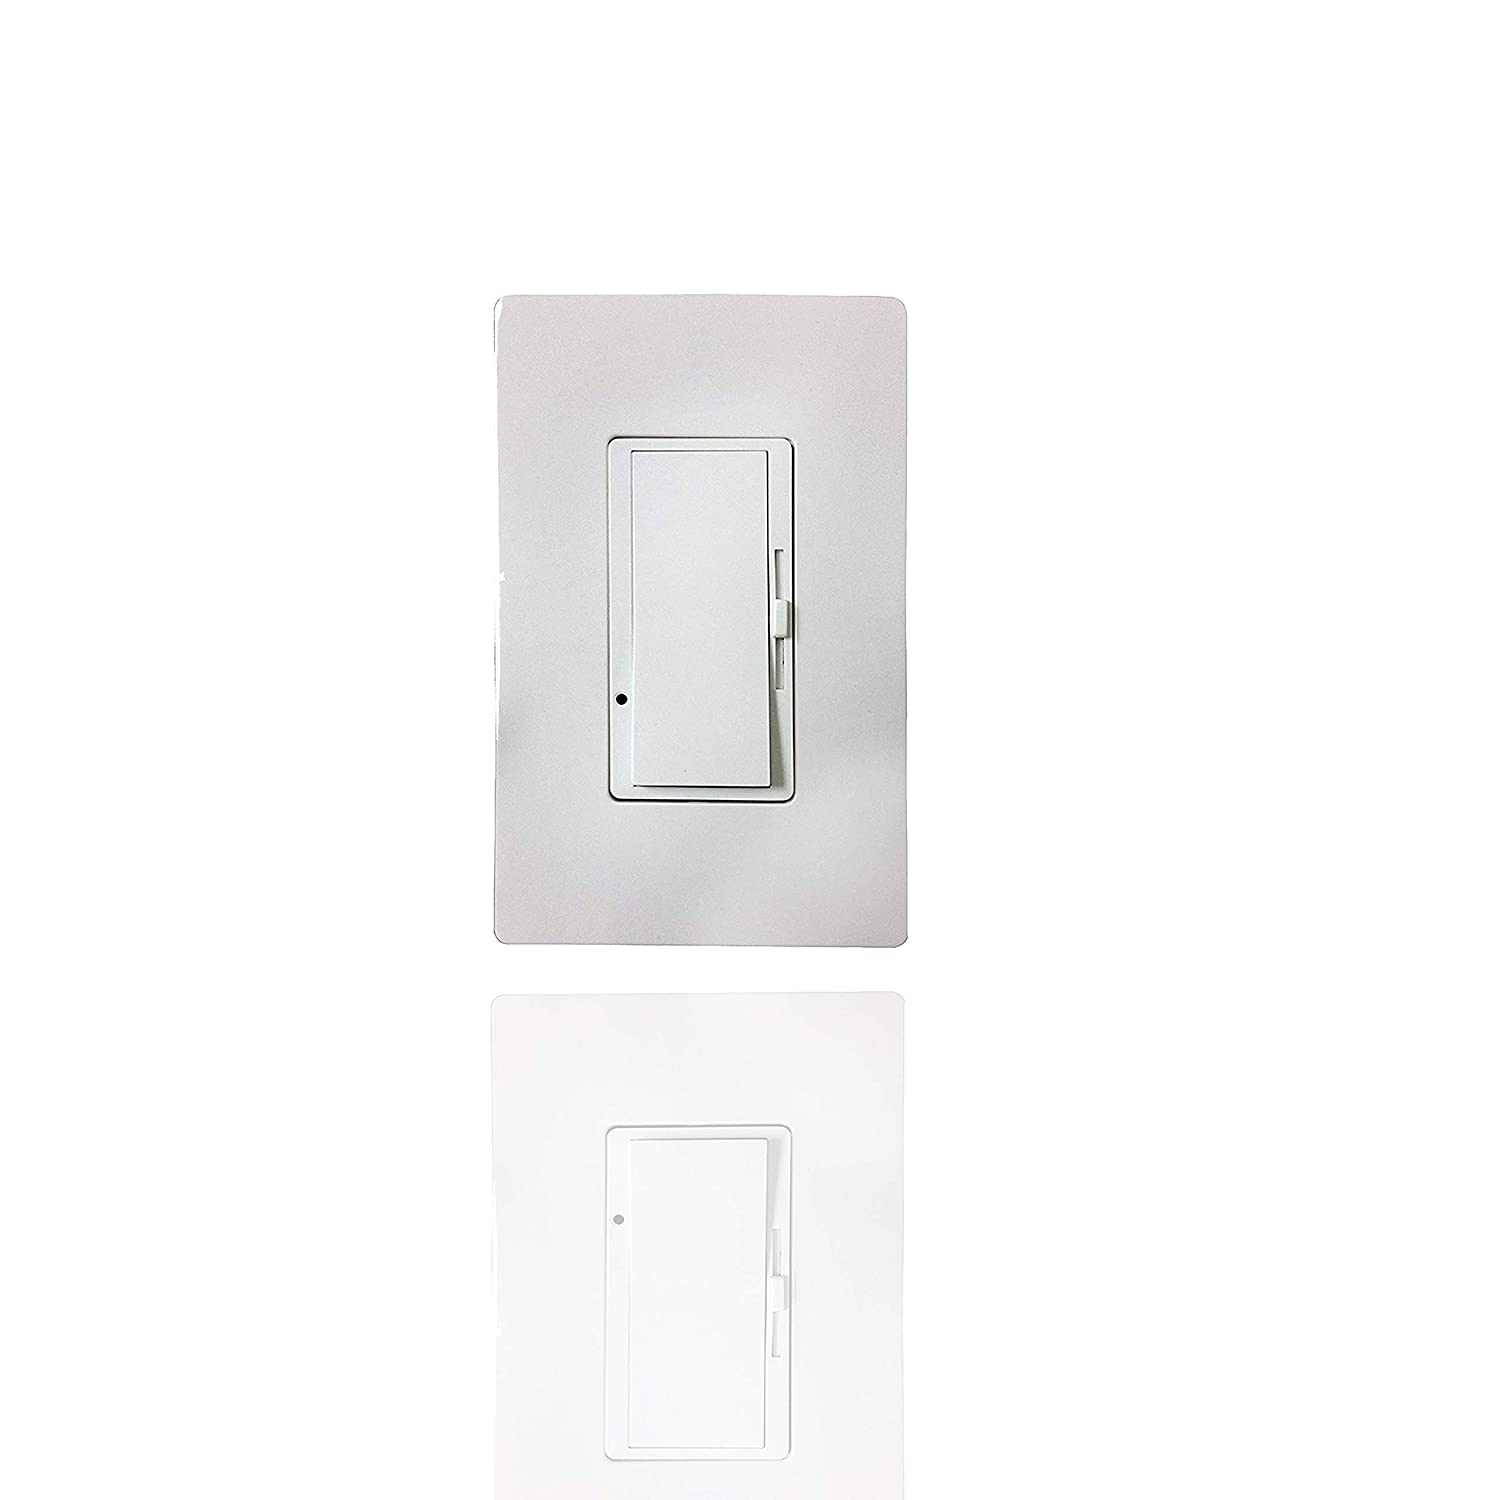 Single Pole Slide, Dimmer Switch, 3-Way 600W, Screwless Wall Plate, LED And Incandecent (No Plate Included) 24 pack - - Amazon.com